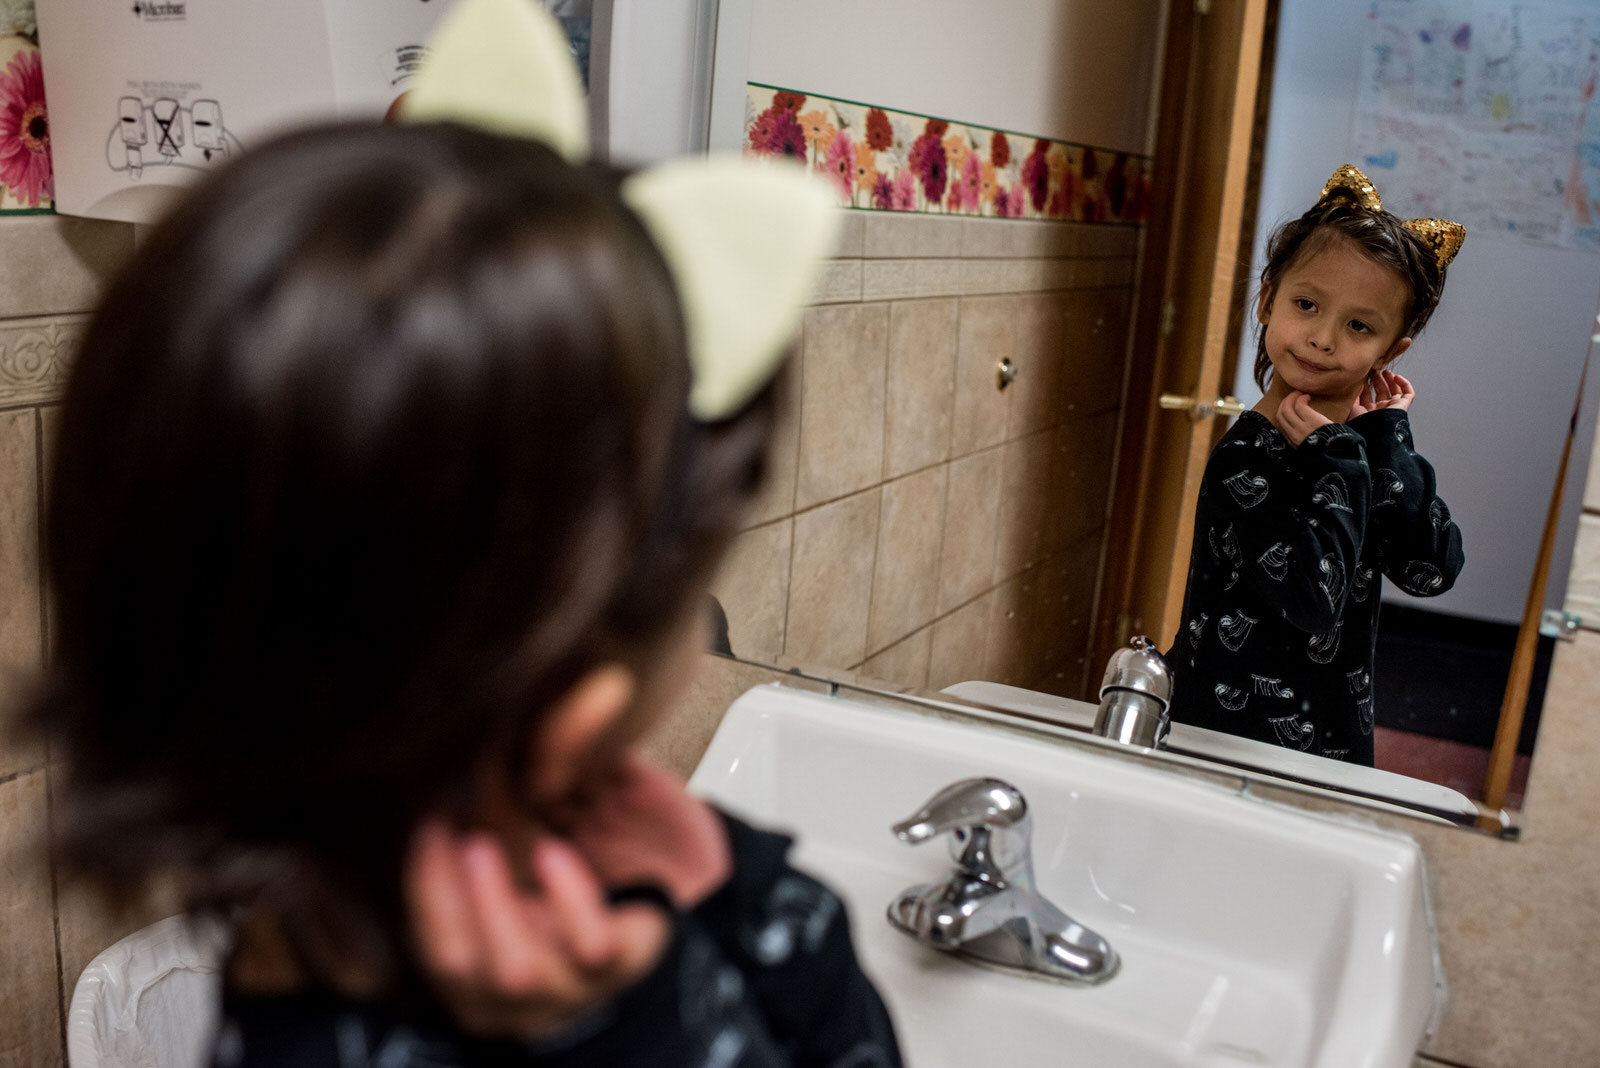 Age 6. He goes to the bathroom at a birthday party and uses the girls' restroom. The cat ears headband is a party favor. He checks his ears in the mirror before returning to the party.